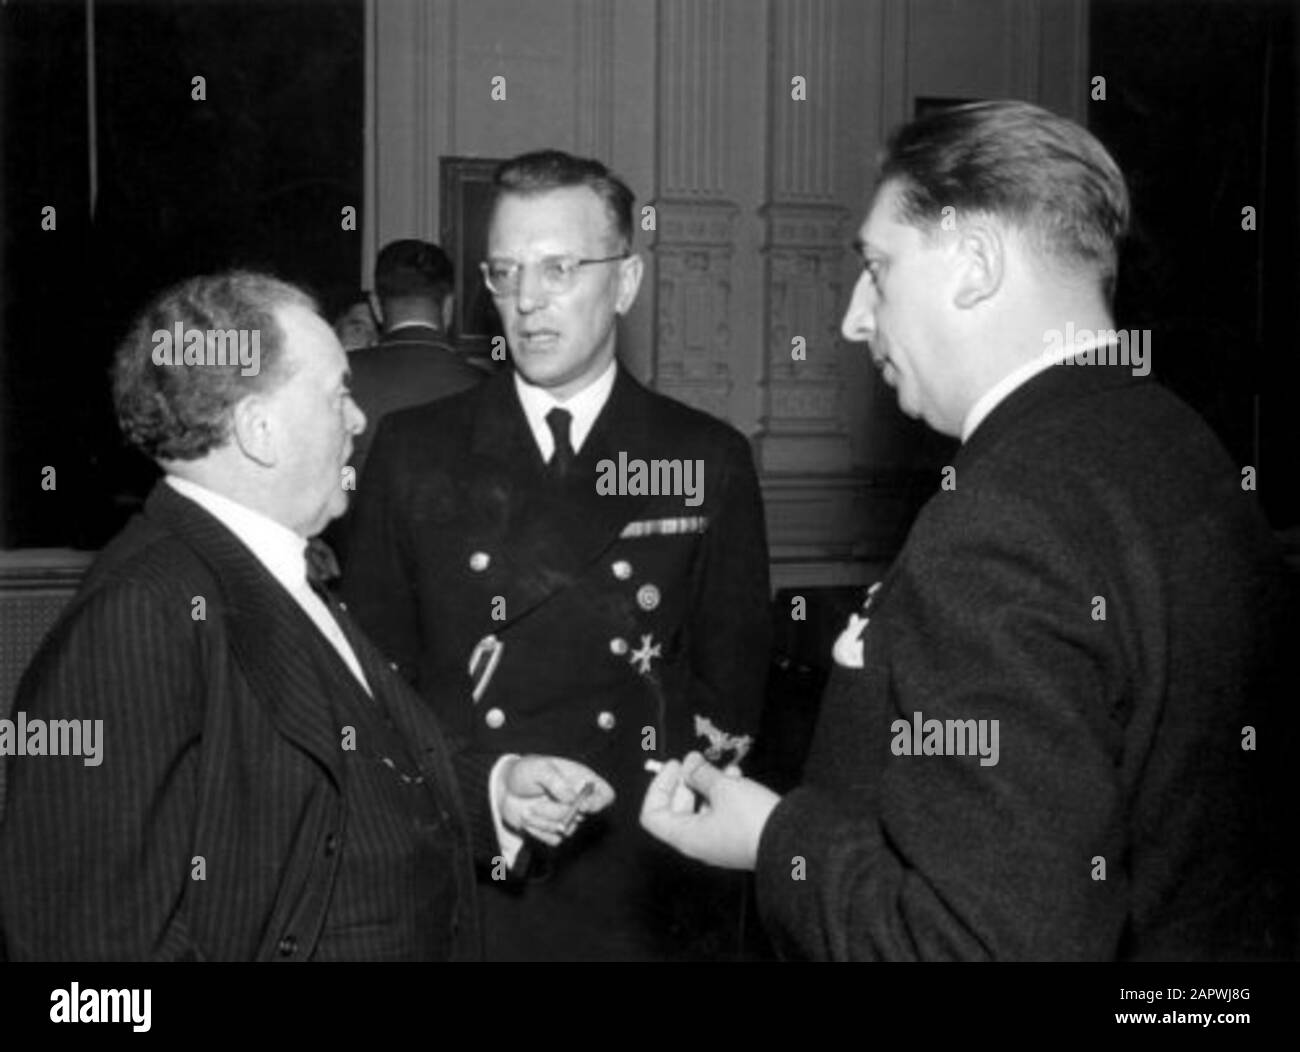 Conductor of the Concertgebouw Orchestra Willem Mengelberg (l) (1871-1951) in conversation with the high Nazi Seyss-Inquart and Prof. Jäger. Amsterdam, [1942] . Conductor Willem Mengelberg (left) talking to Reichskommissar Arthur Seyss-Inquart and Prof. Jäger. Concertgebouw Amsterdam [1942].; Stock Photo